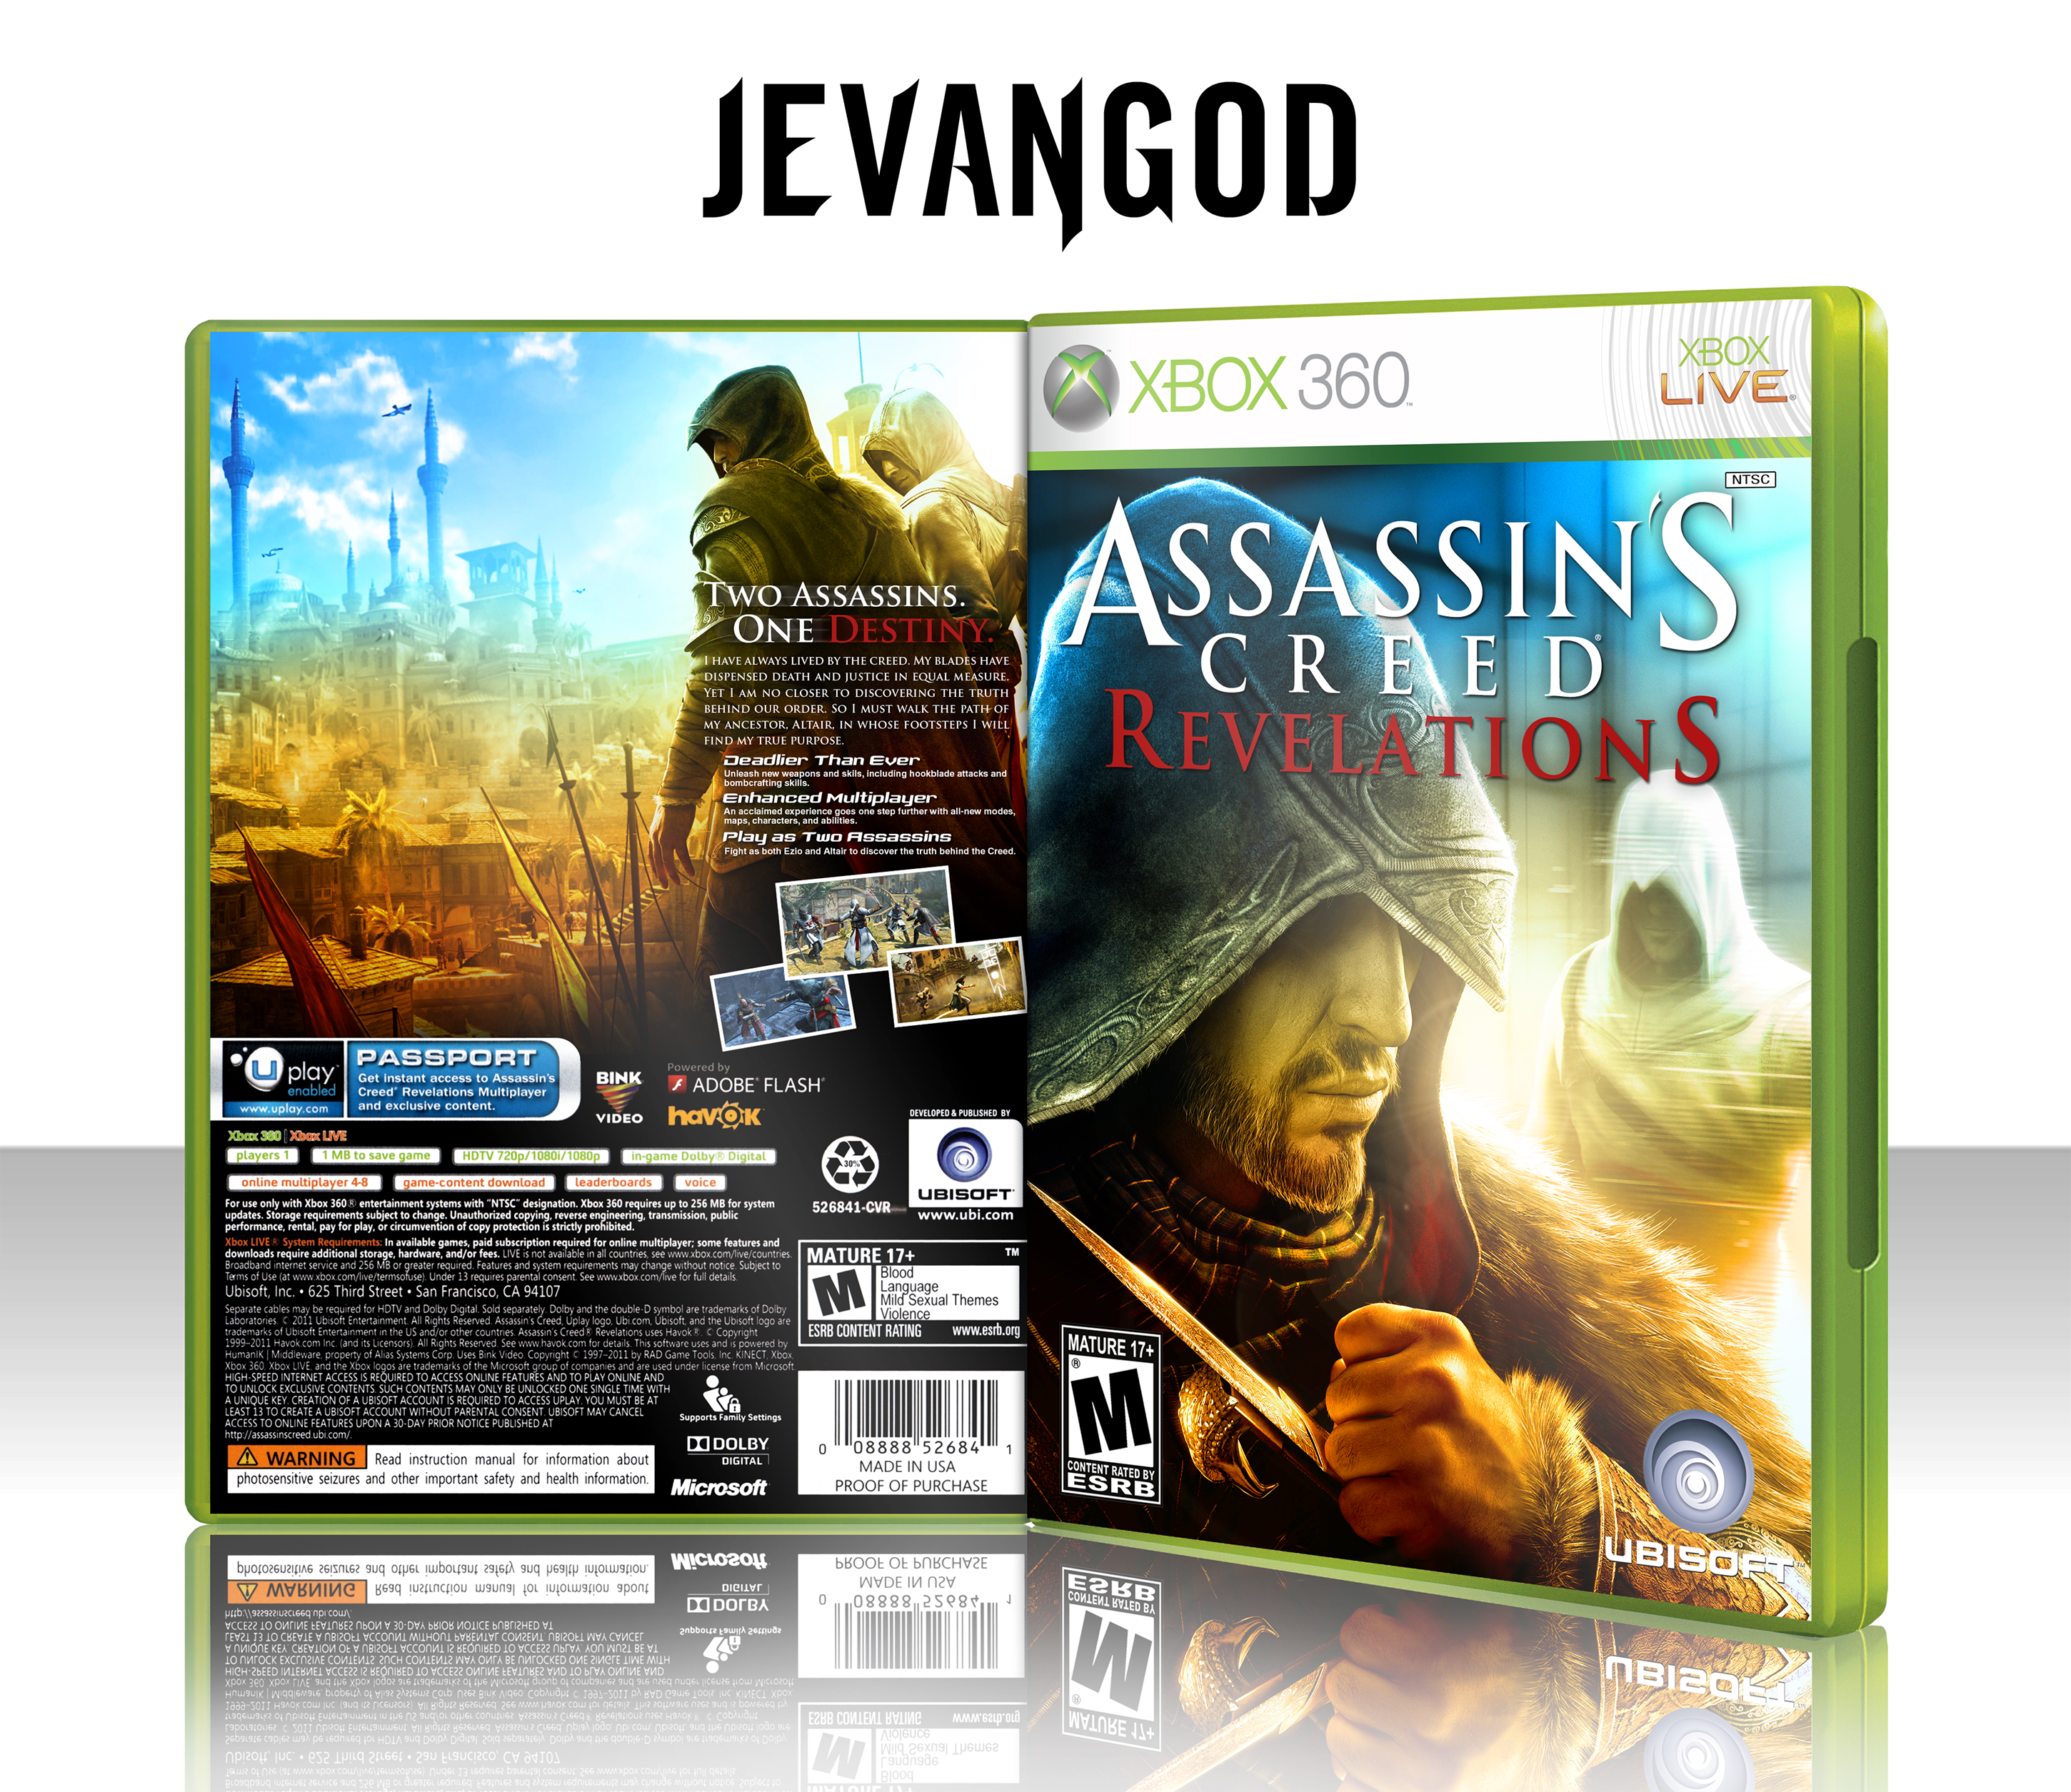 Assassins Creed Revelations box cover